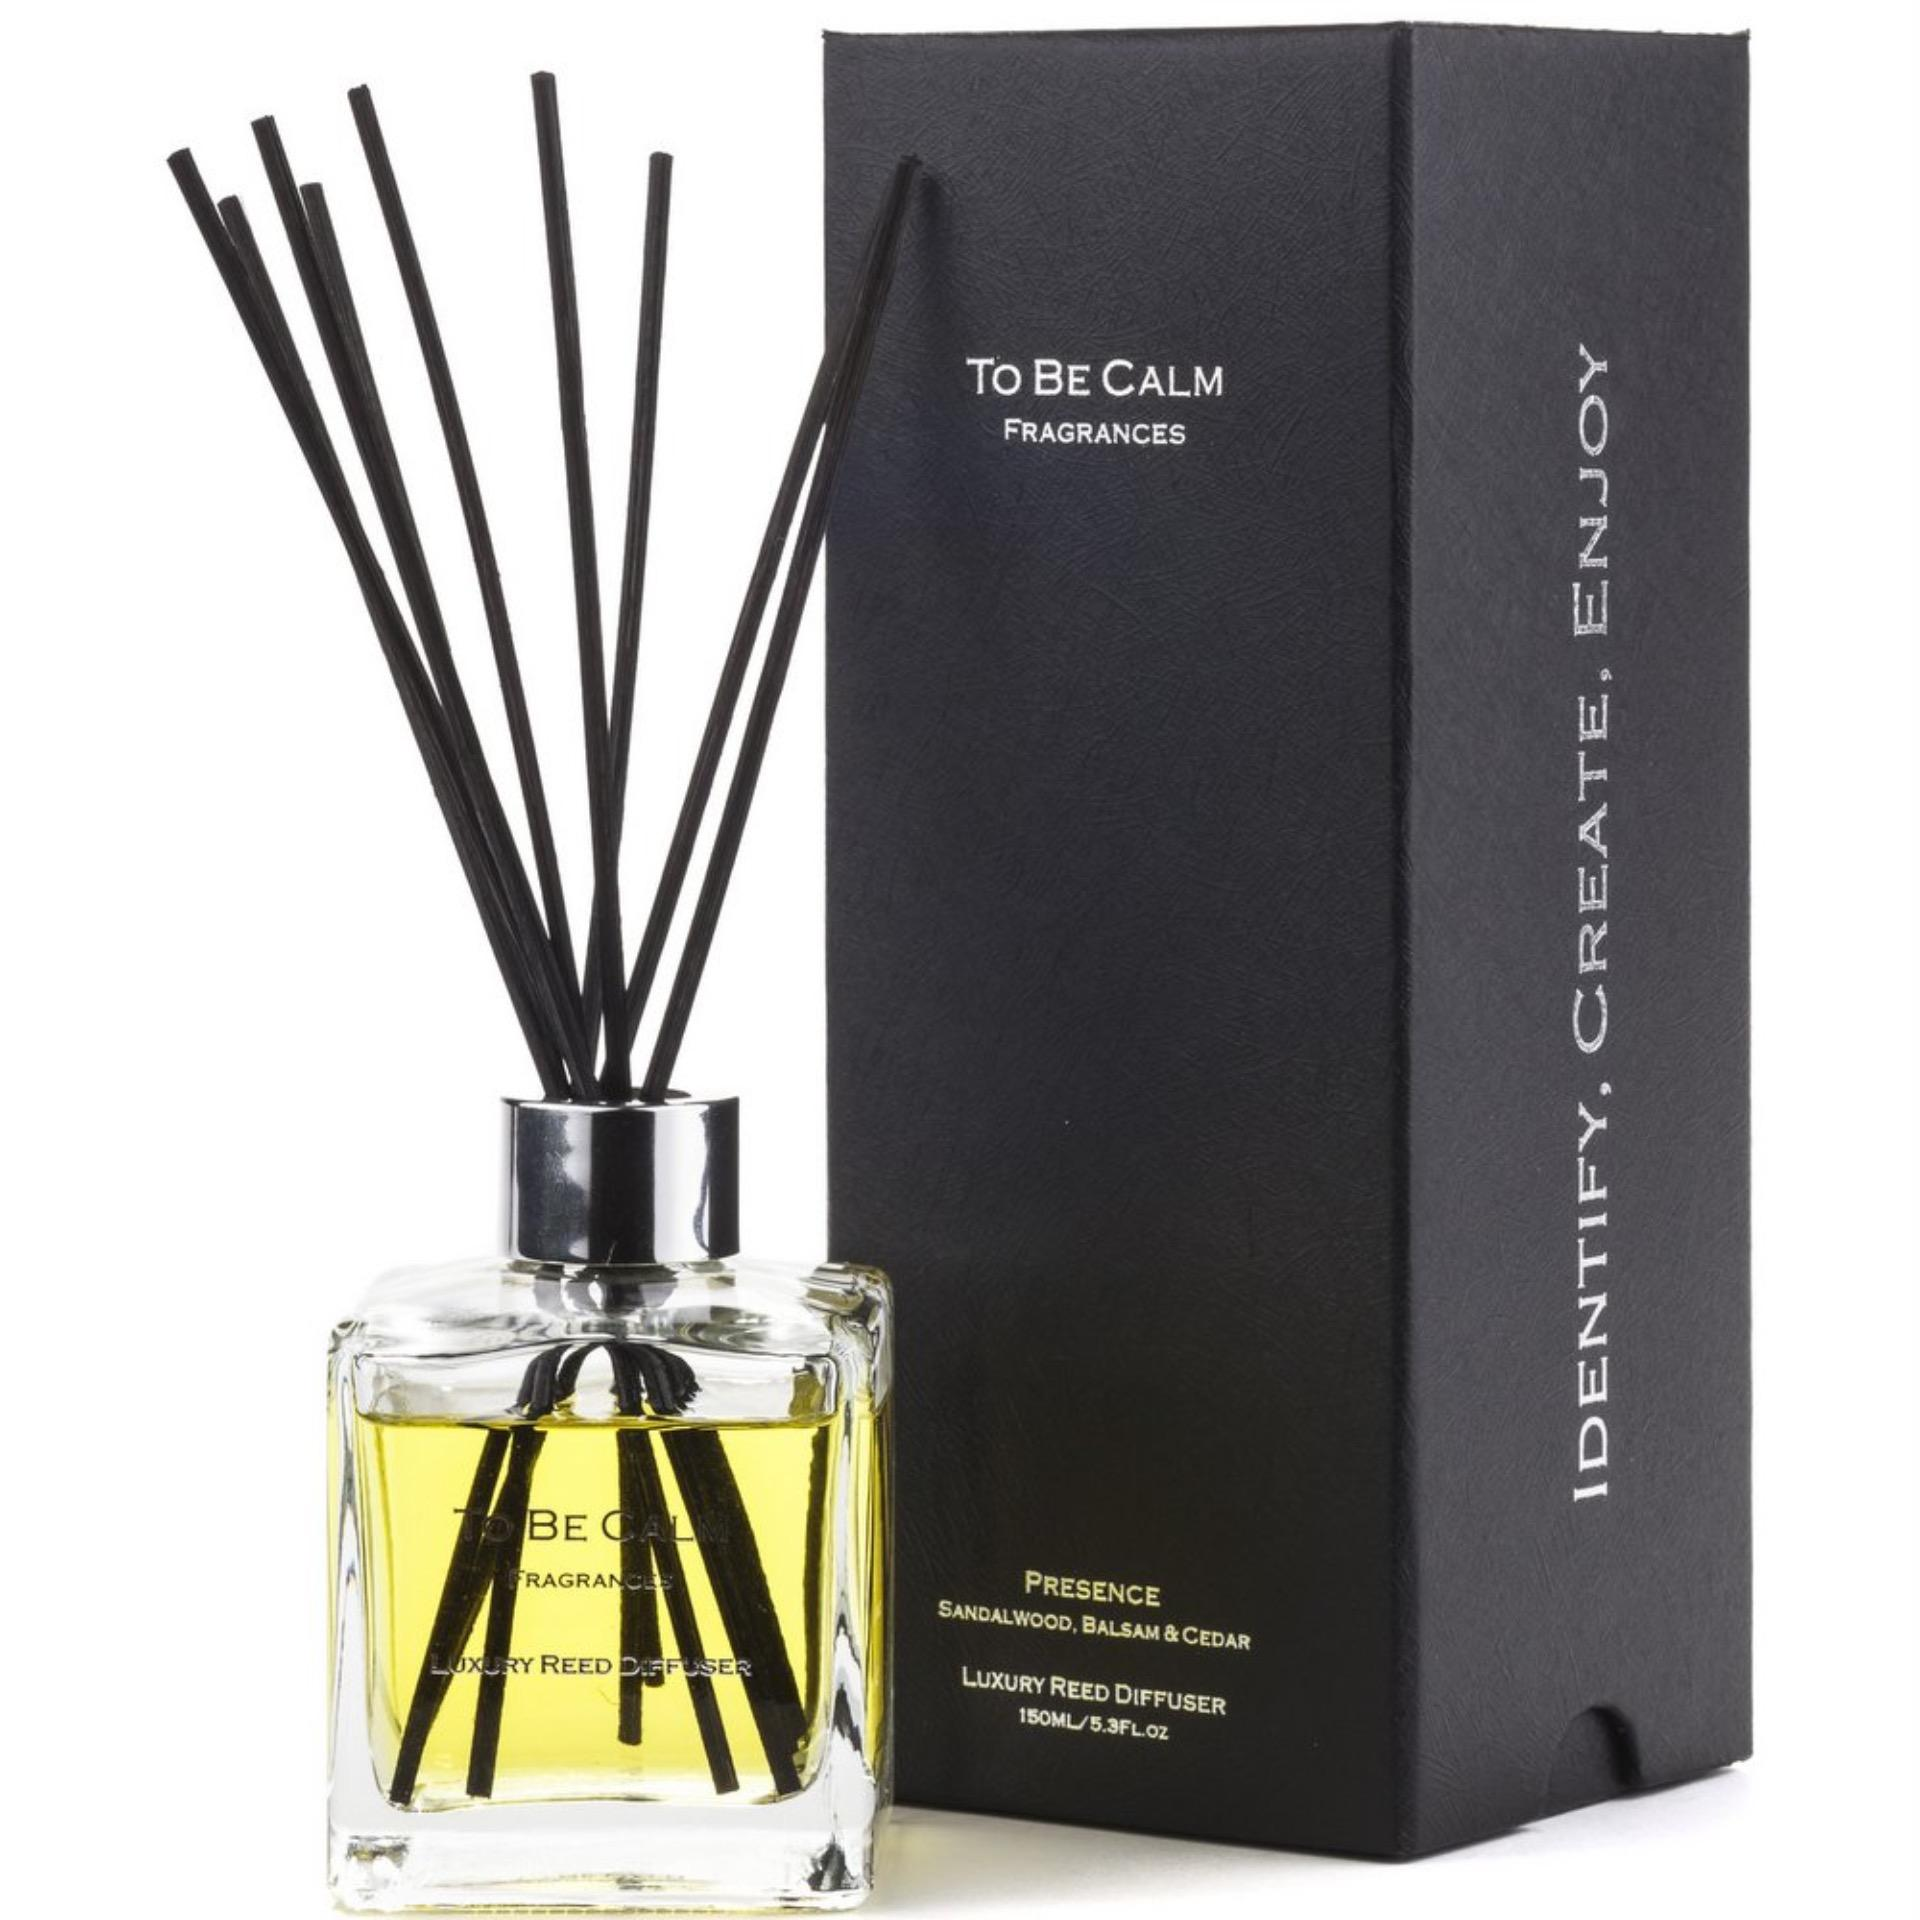 To Be Calm Presence - Sandalwood, Balsam & Cedar - Reed Diffuser